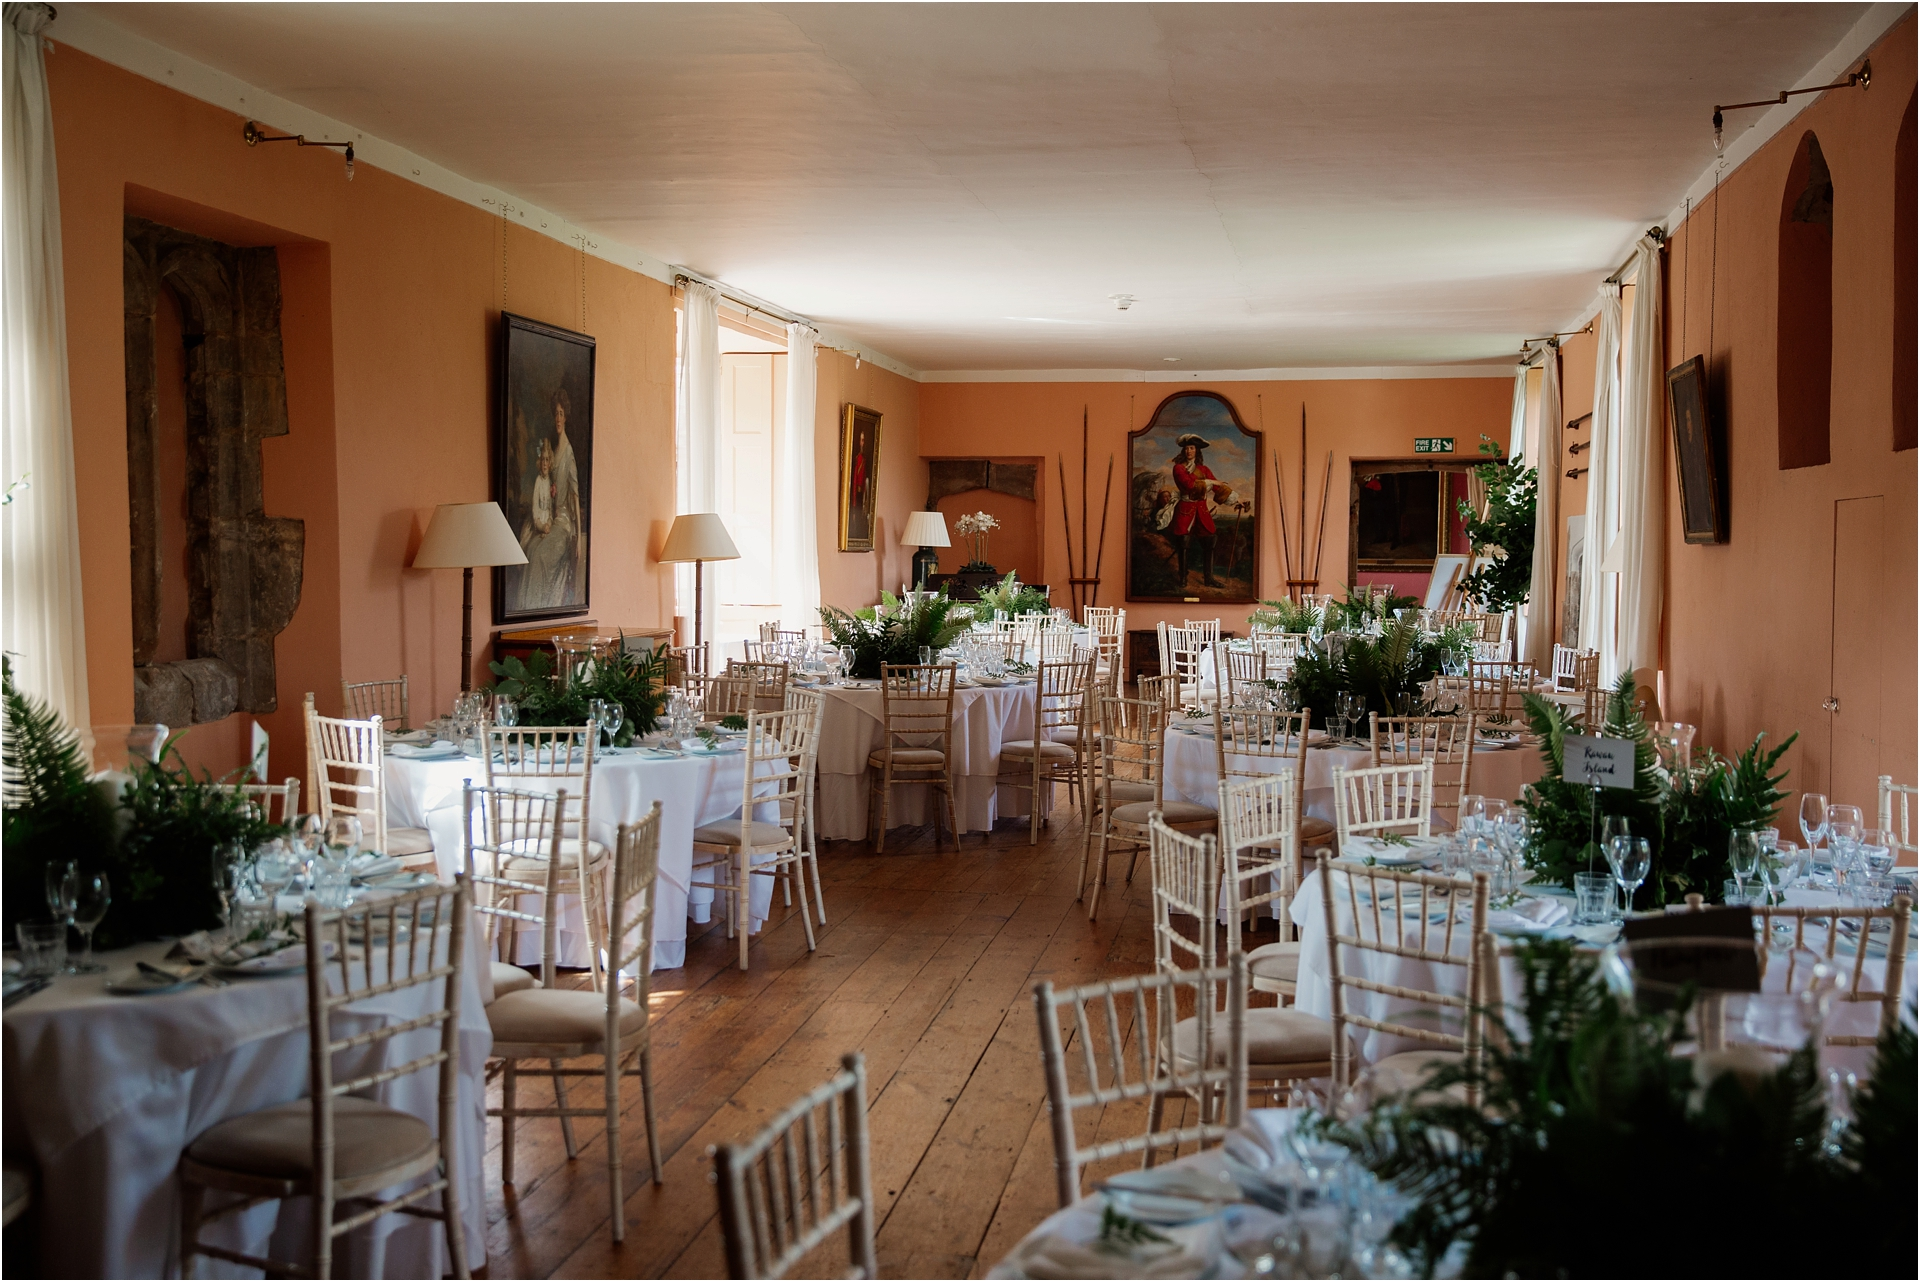 dining room at Holme Pierrepont Hall